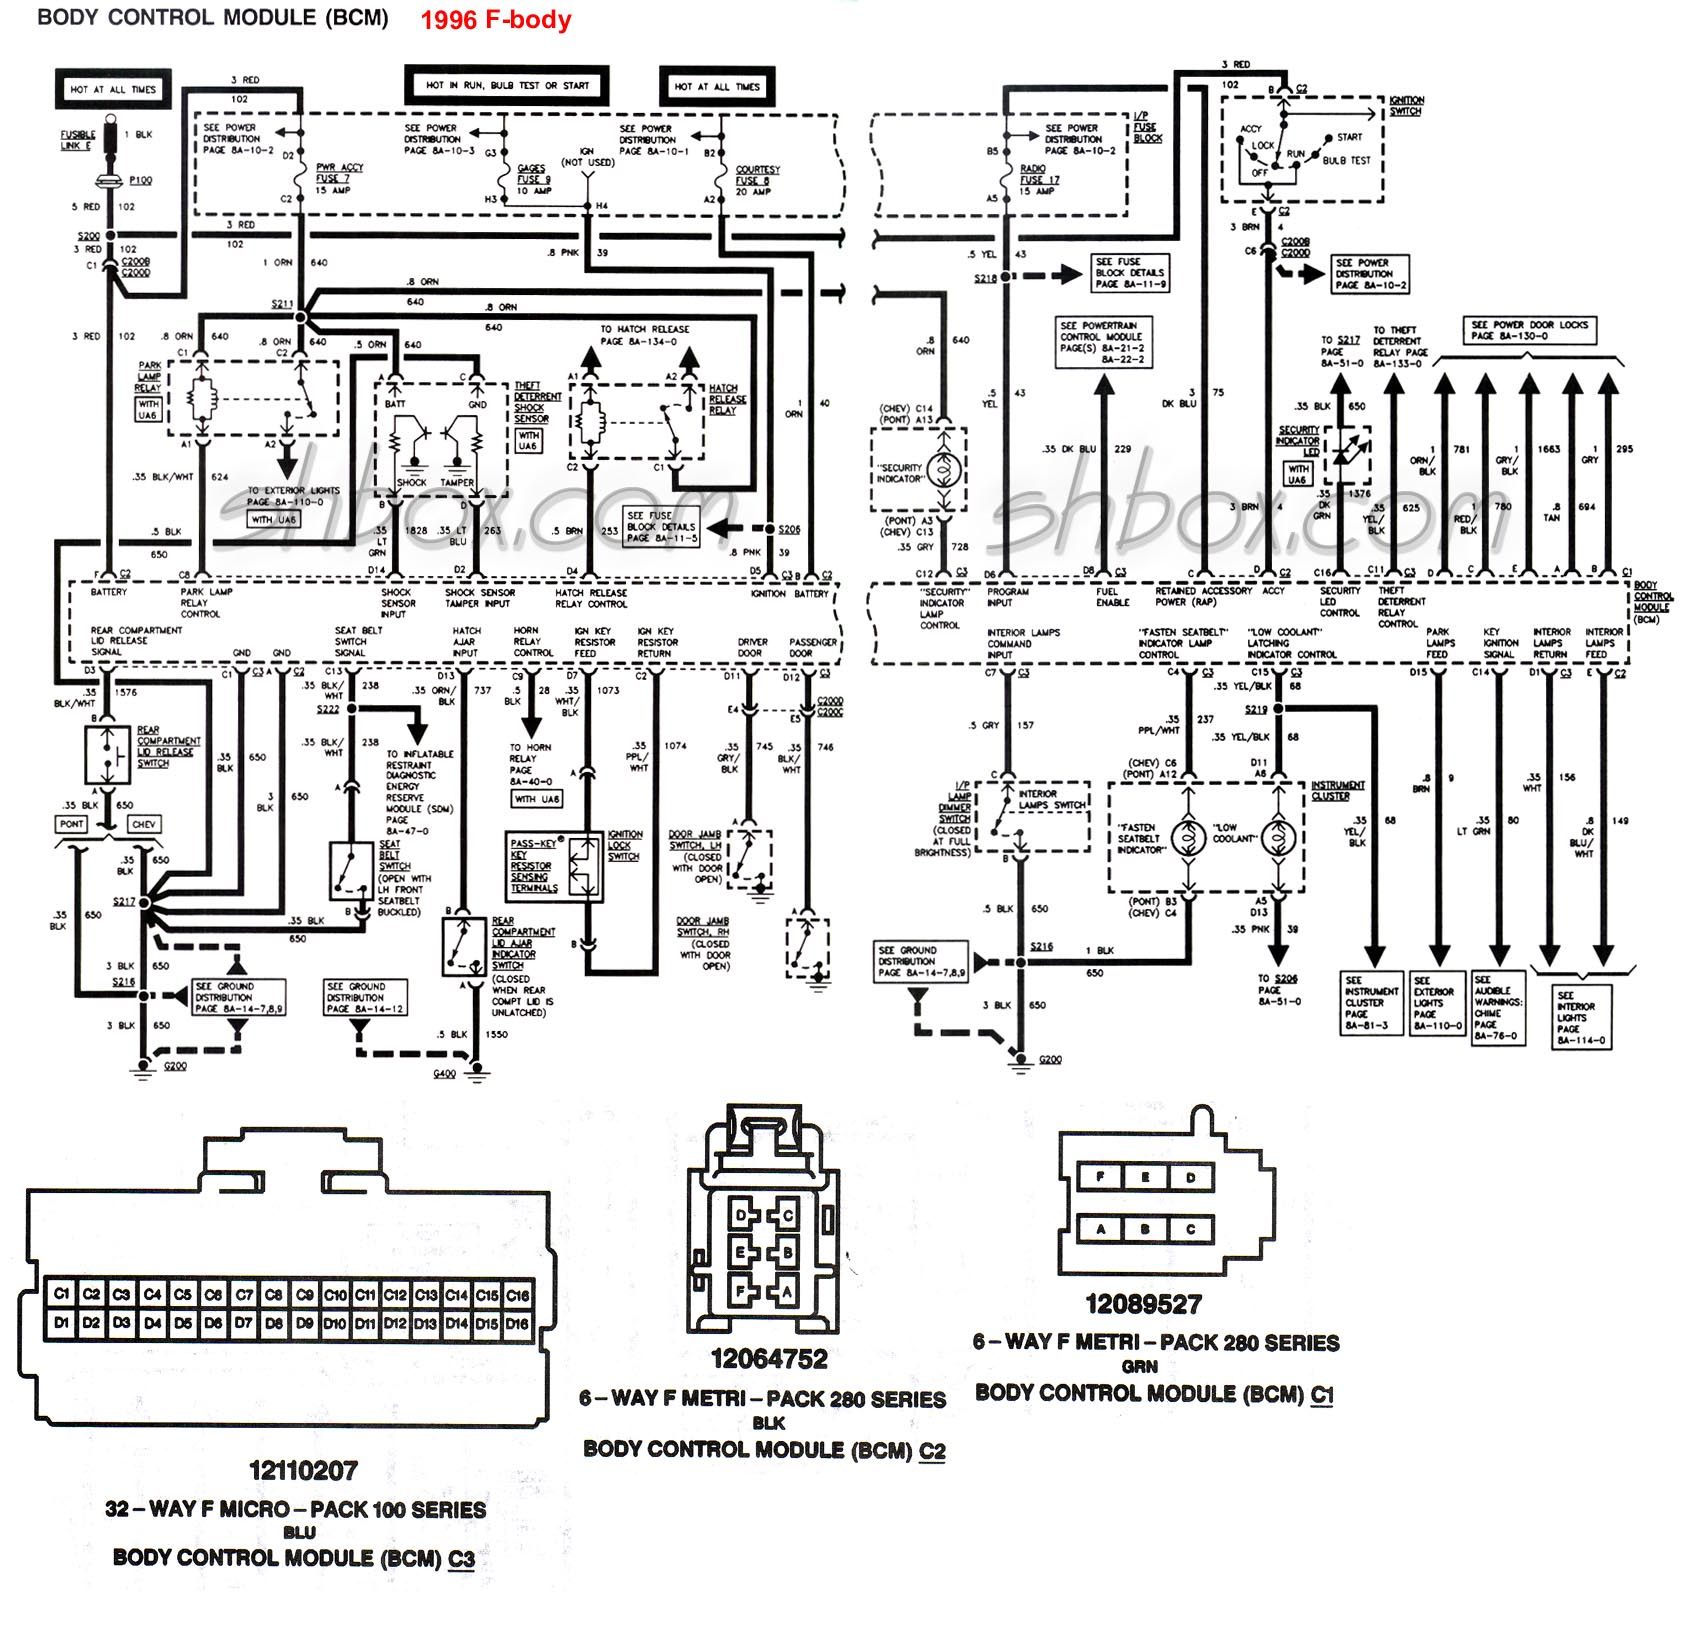 Chevy Colorado Trailer Wiring Diagram further 5slgw Pontiac Grand Prix Gtp Bypass Fuel Pump Relay together with 972665 Brake Lights Rear Hazard Lights Not Working together with 2tm14 Hello My 1997 Chevrolet Full Size Pickup Brake Lights Stopped moreover Wiring Diagram For 2010 Gmc Acadia. on 2004 chevy cavalier tail light wiring diagram